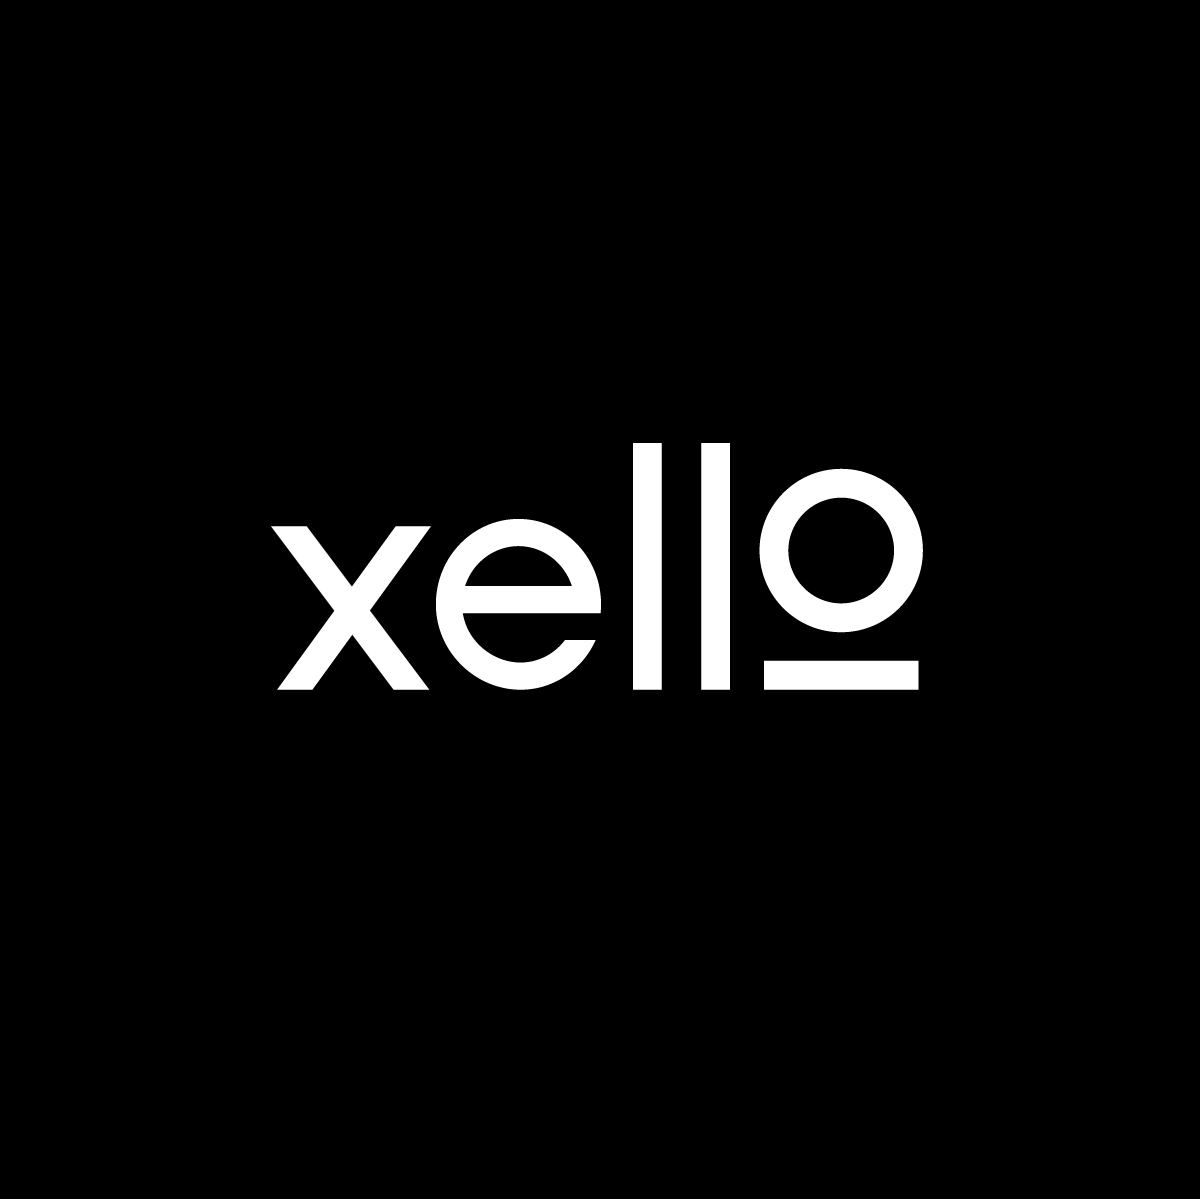 Xello Brand Identity Brand Mark on Black Background